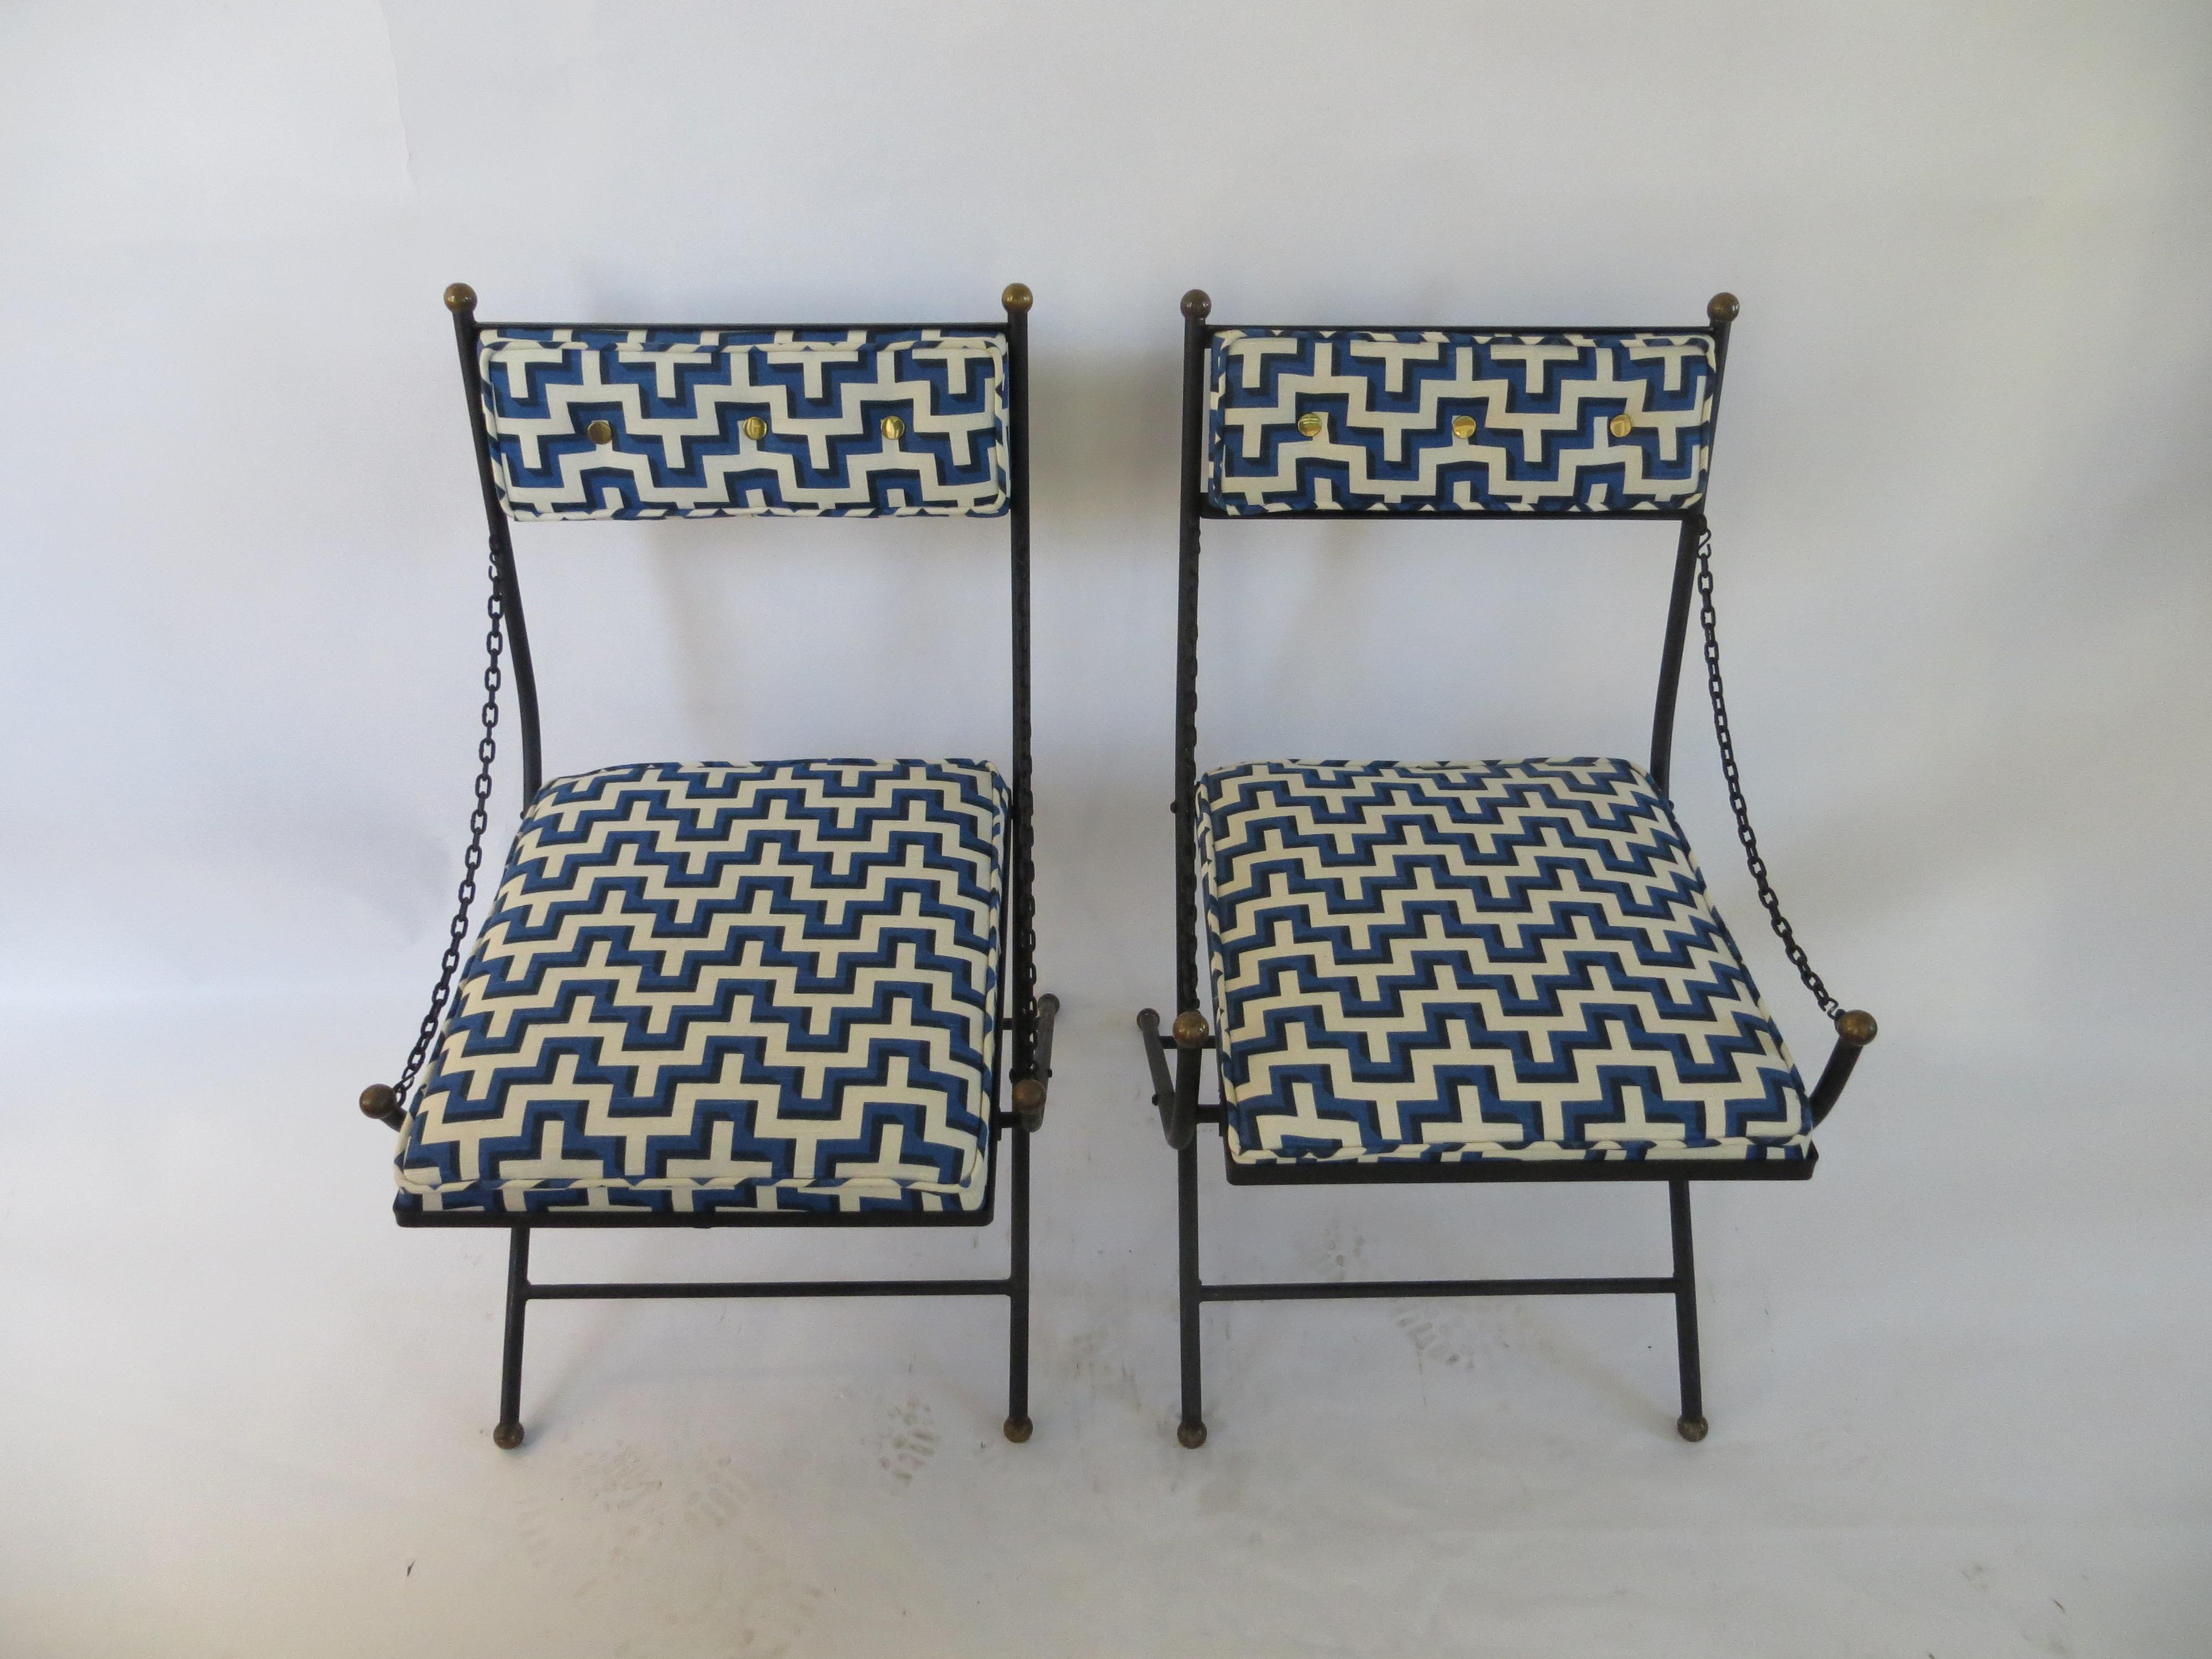 Attrayant Vintage Folding Wrought Iron Chairs   A Pair   Image 2 Of 7